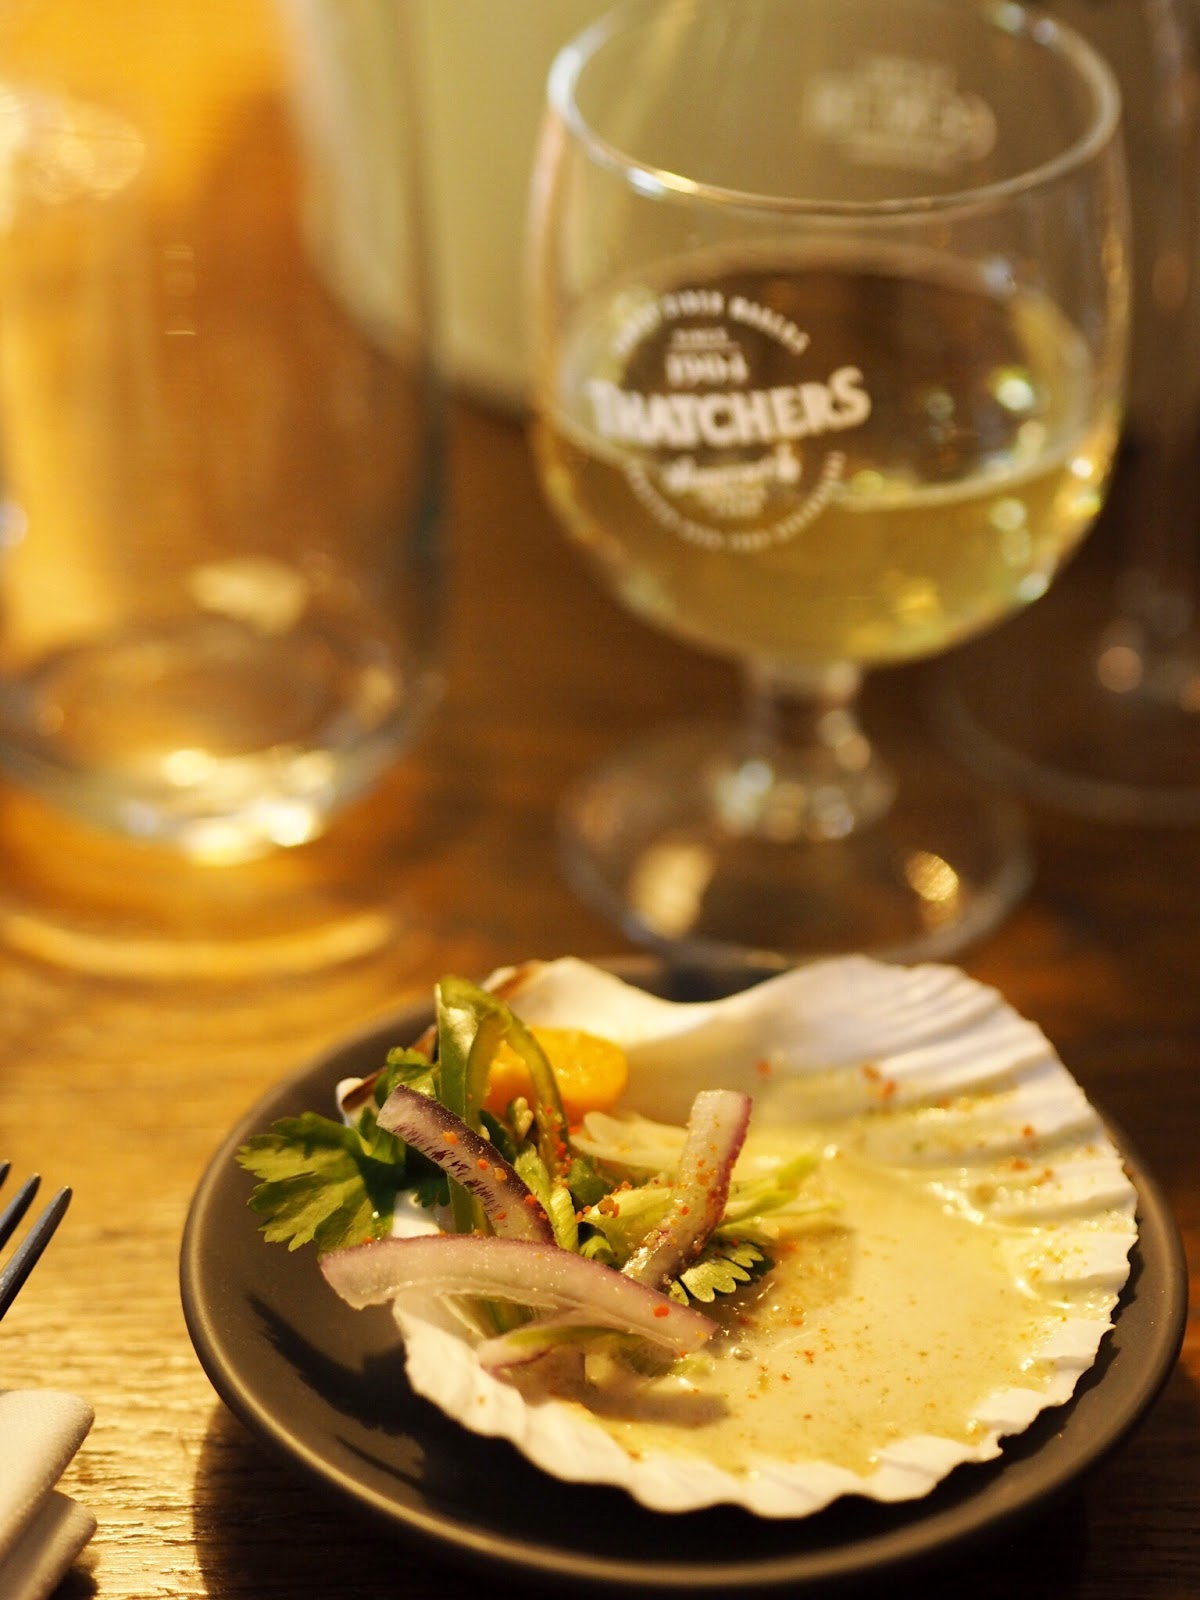 Thatchers Katy with Scallop Ceviche